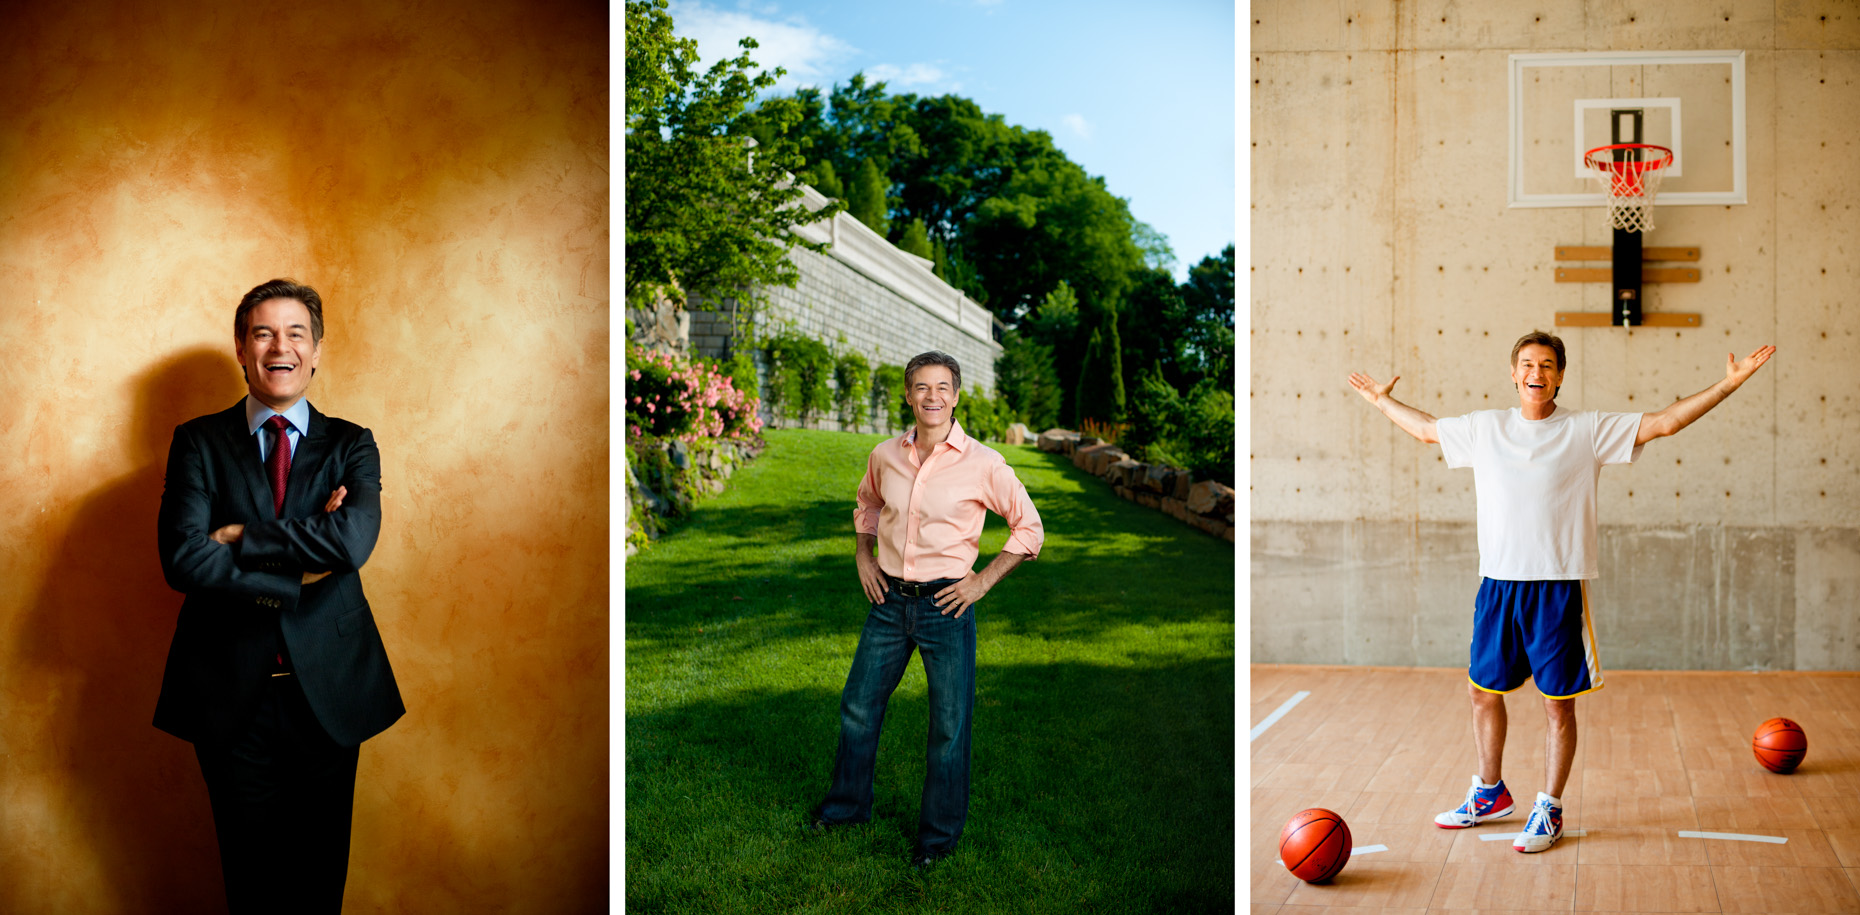 Editorial Portraits - Celebrity Dr. Oz - wall, garden, basketball